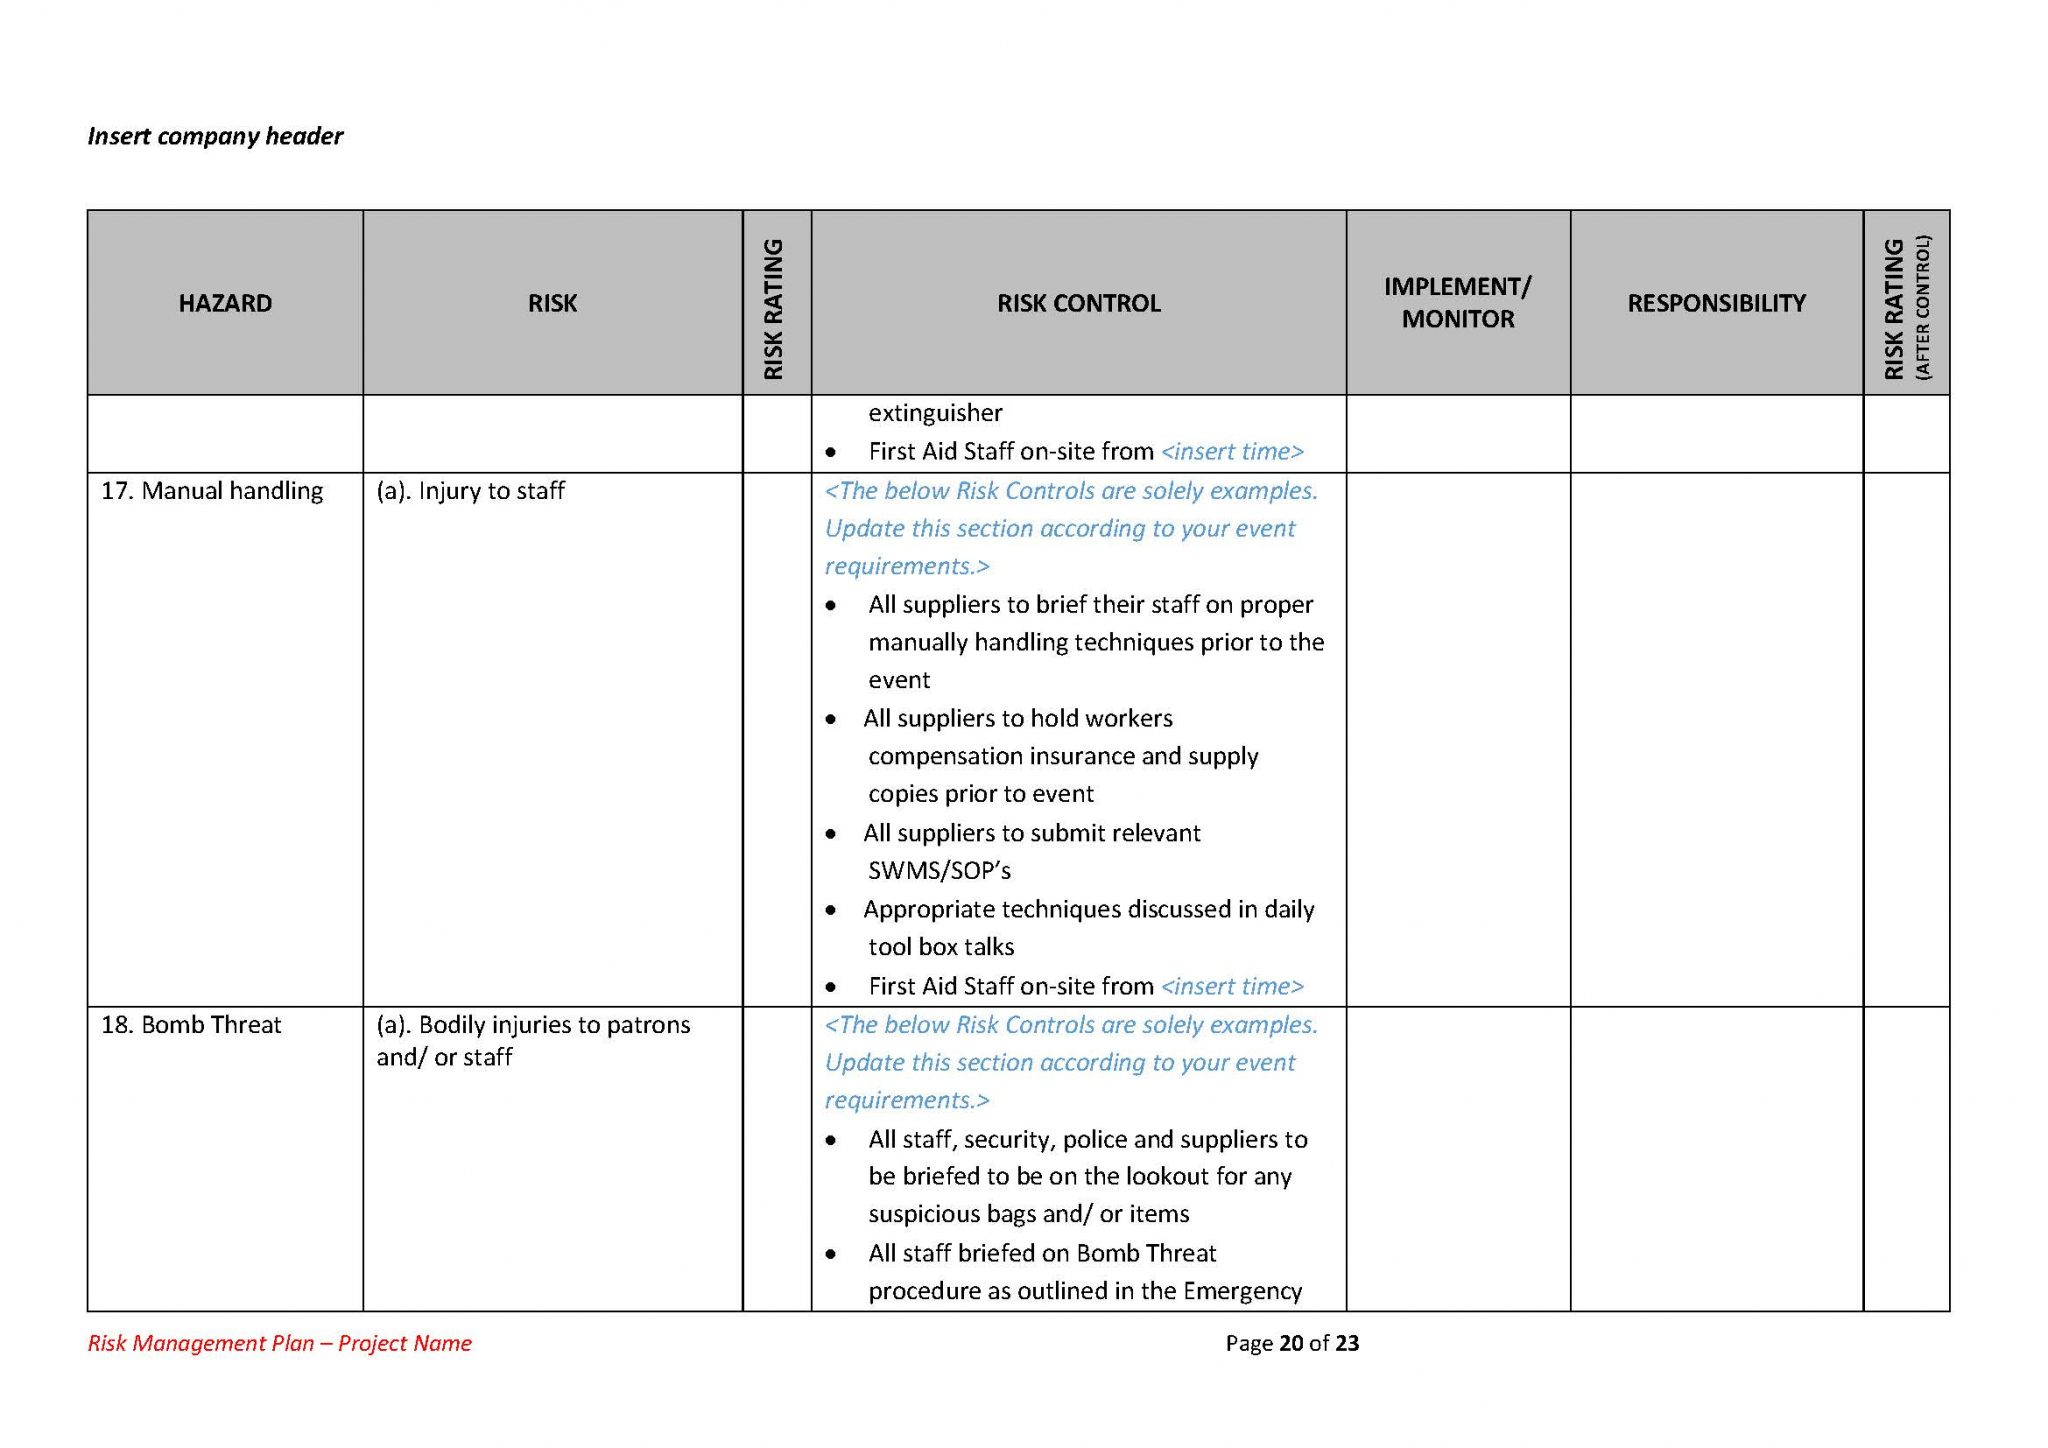 Risk Management Plan Template - The Best Template for Events!